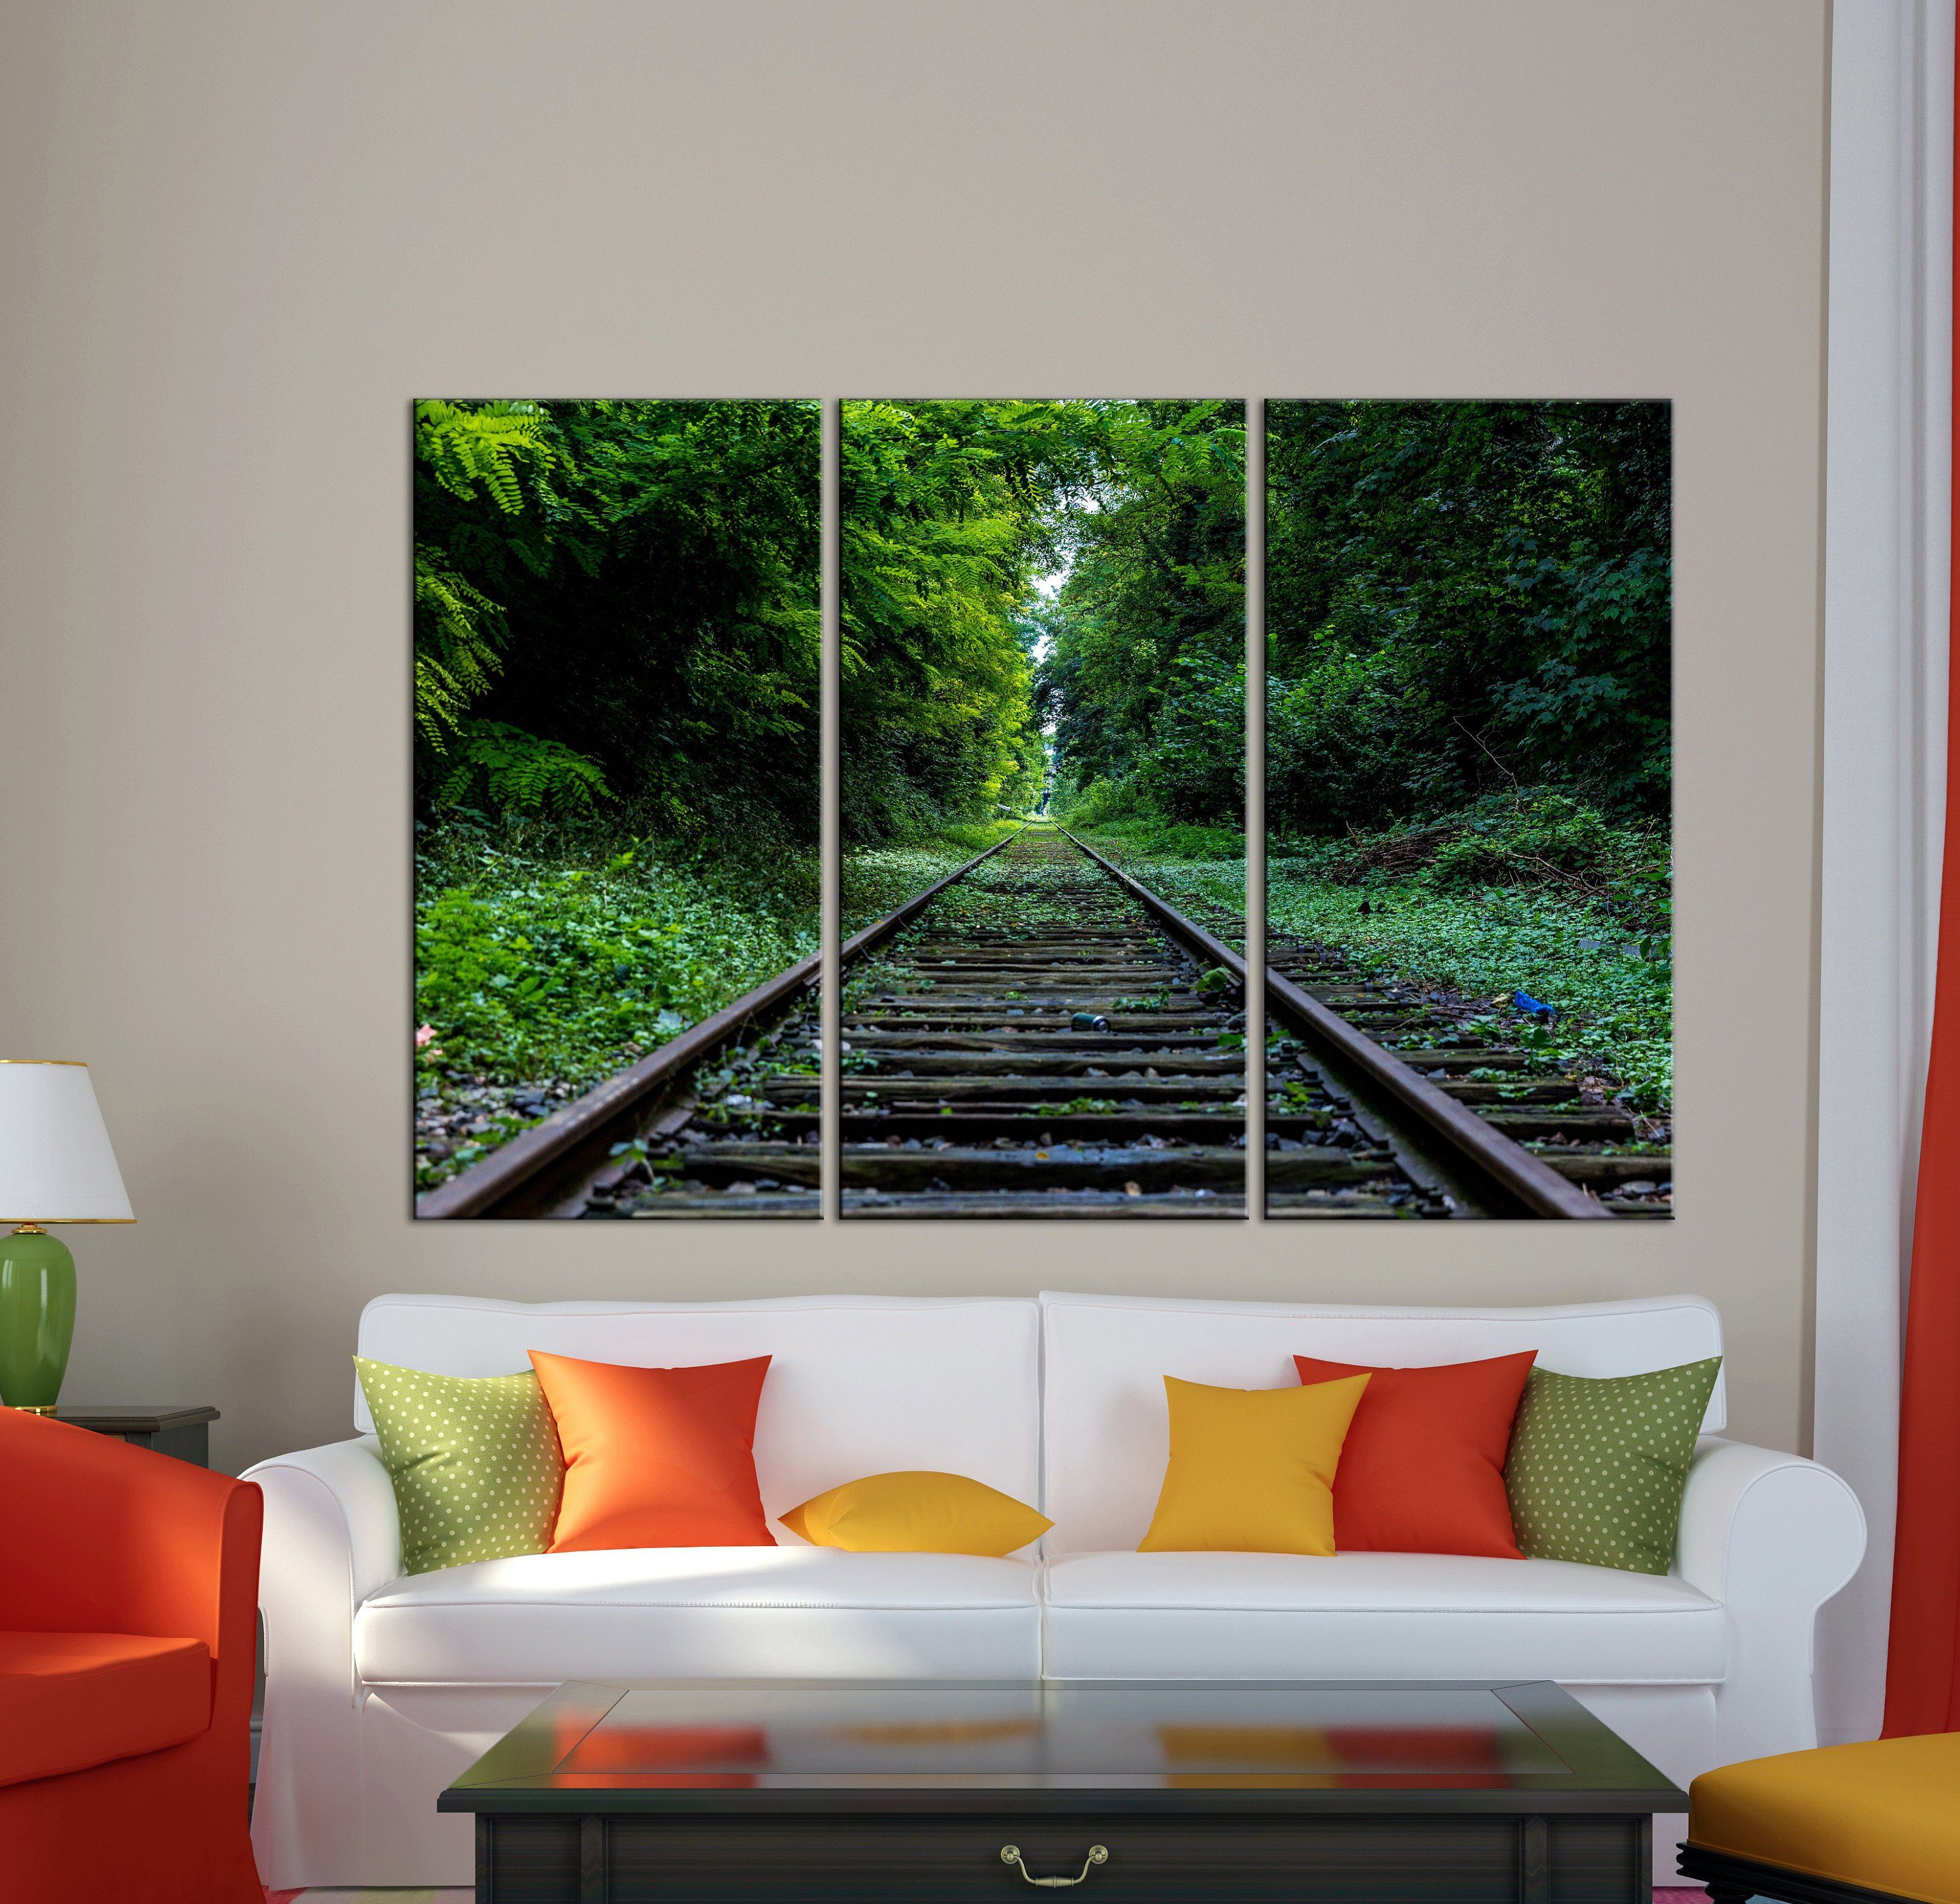 Railroad In The Forest Print Canvas Print Railroad Canvas Print Rails In Forest Wall Art Photoprint Green Fores Forest Wall Art London Wall Art Nature Wall Art